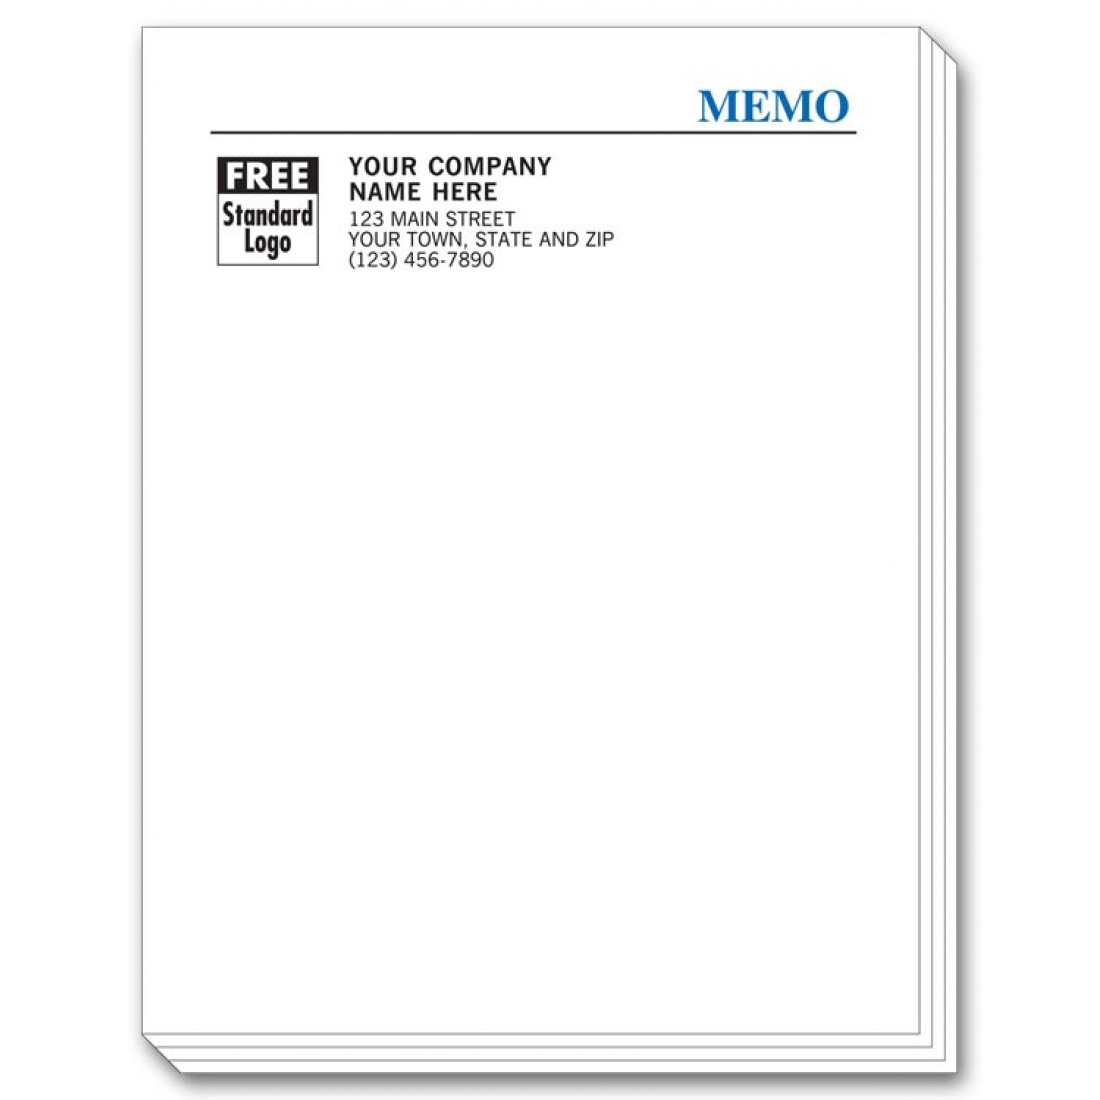 Personalized Memo Pad Sheets